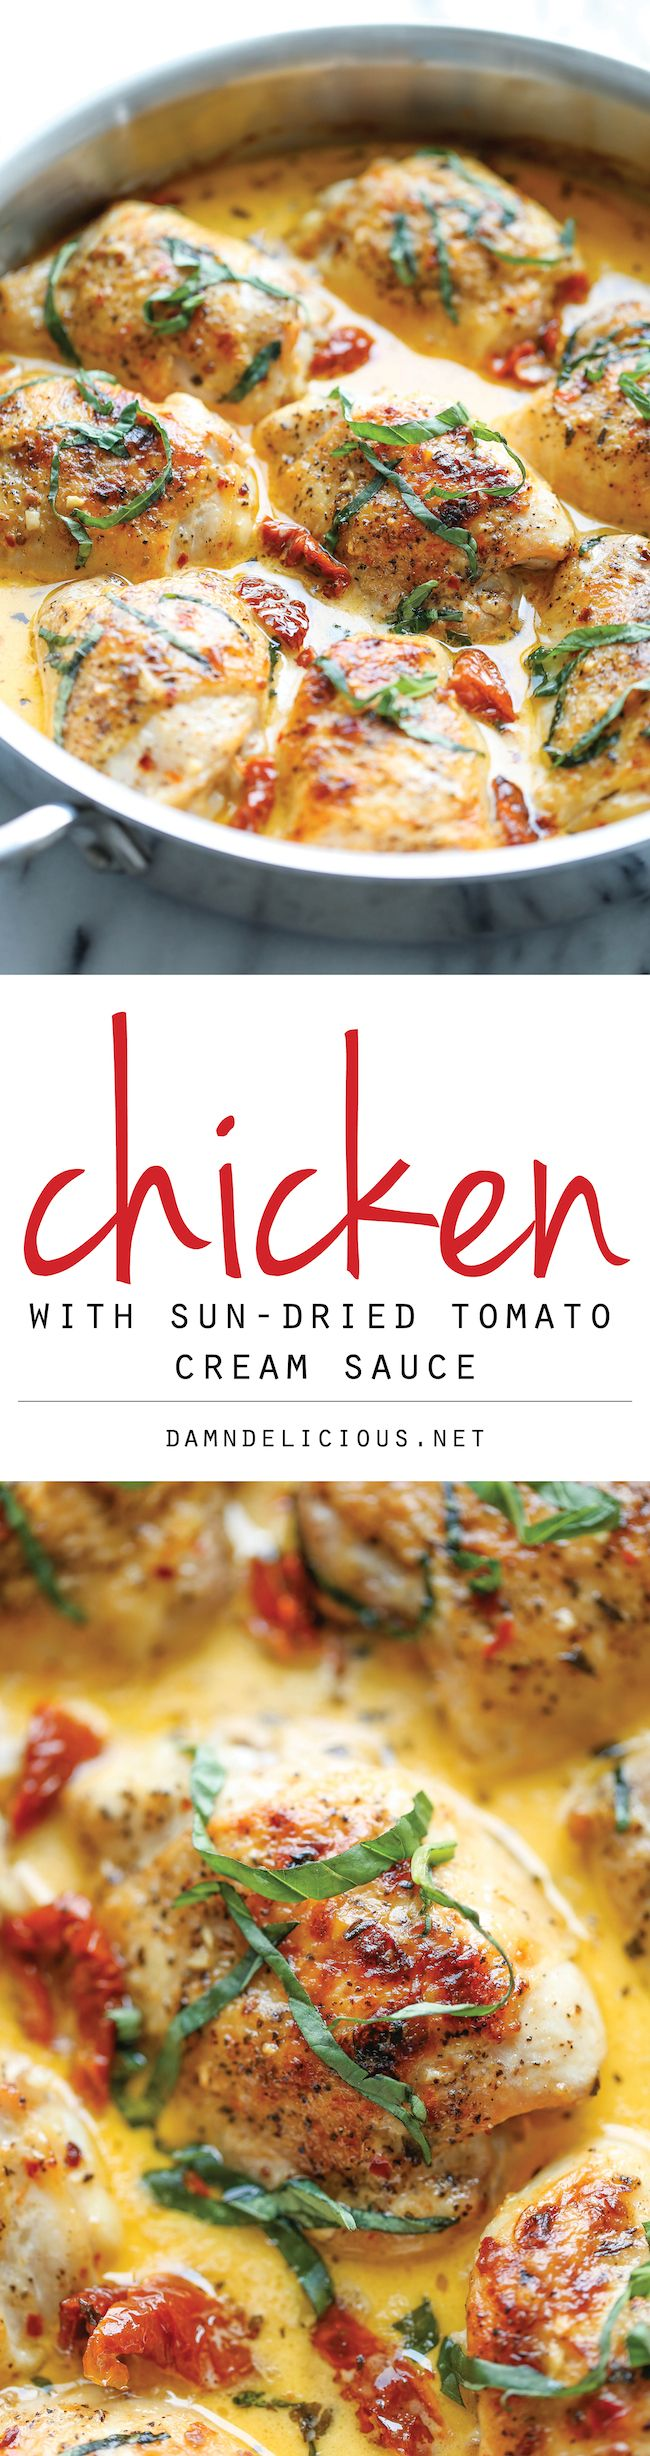 Chicken with Sun-Dried Tomato Cream Sauce - Crisp-tender chicken in the most amazing cream sauce ever! The cream sauce is so good, you just might want to skip the chicken and eat the sauce with a spoon instead!